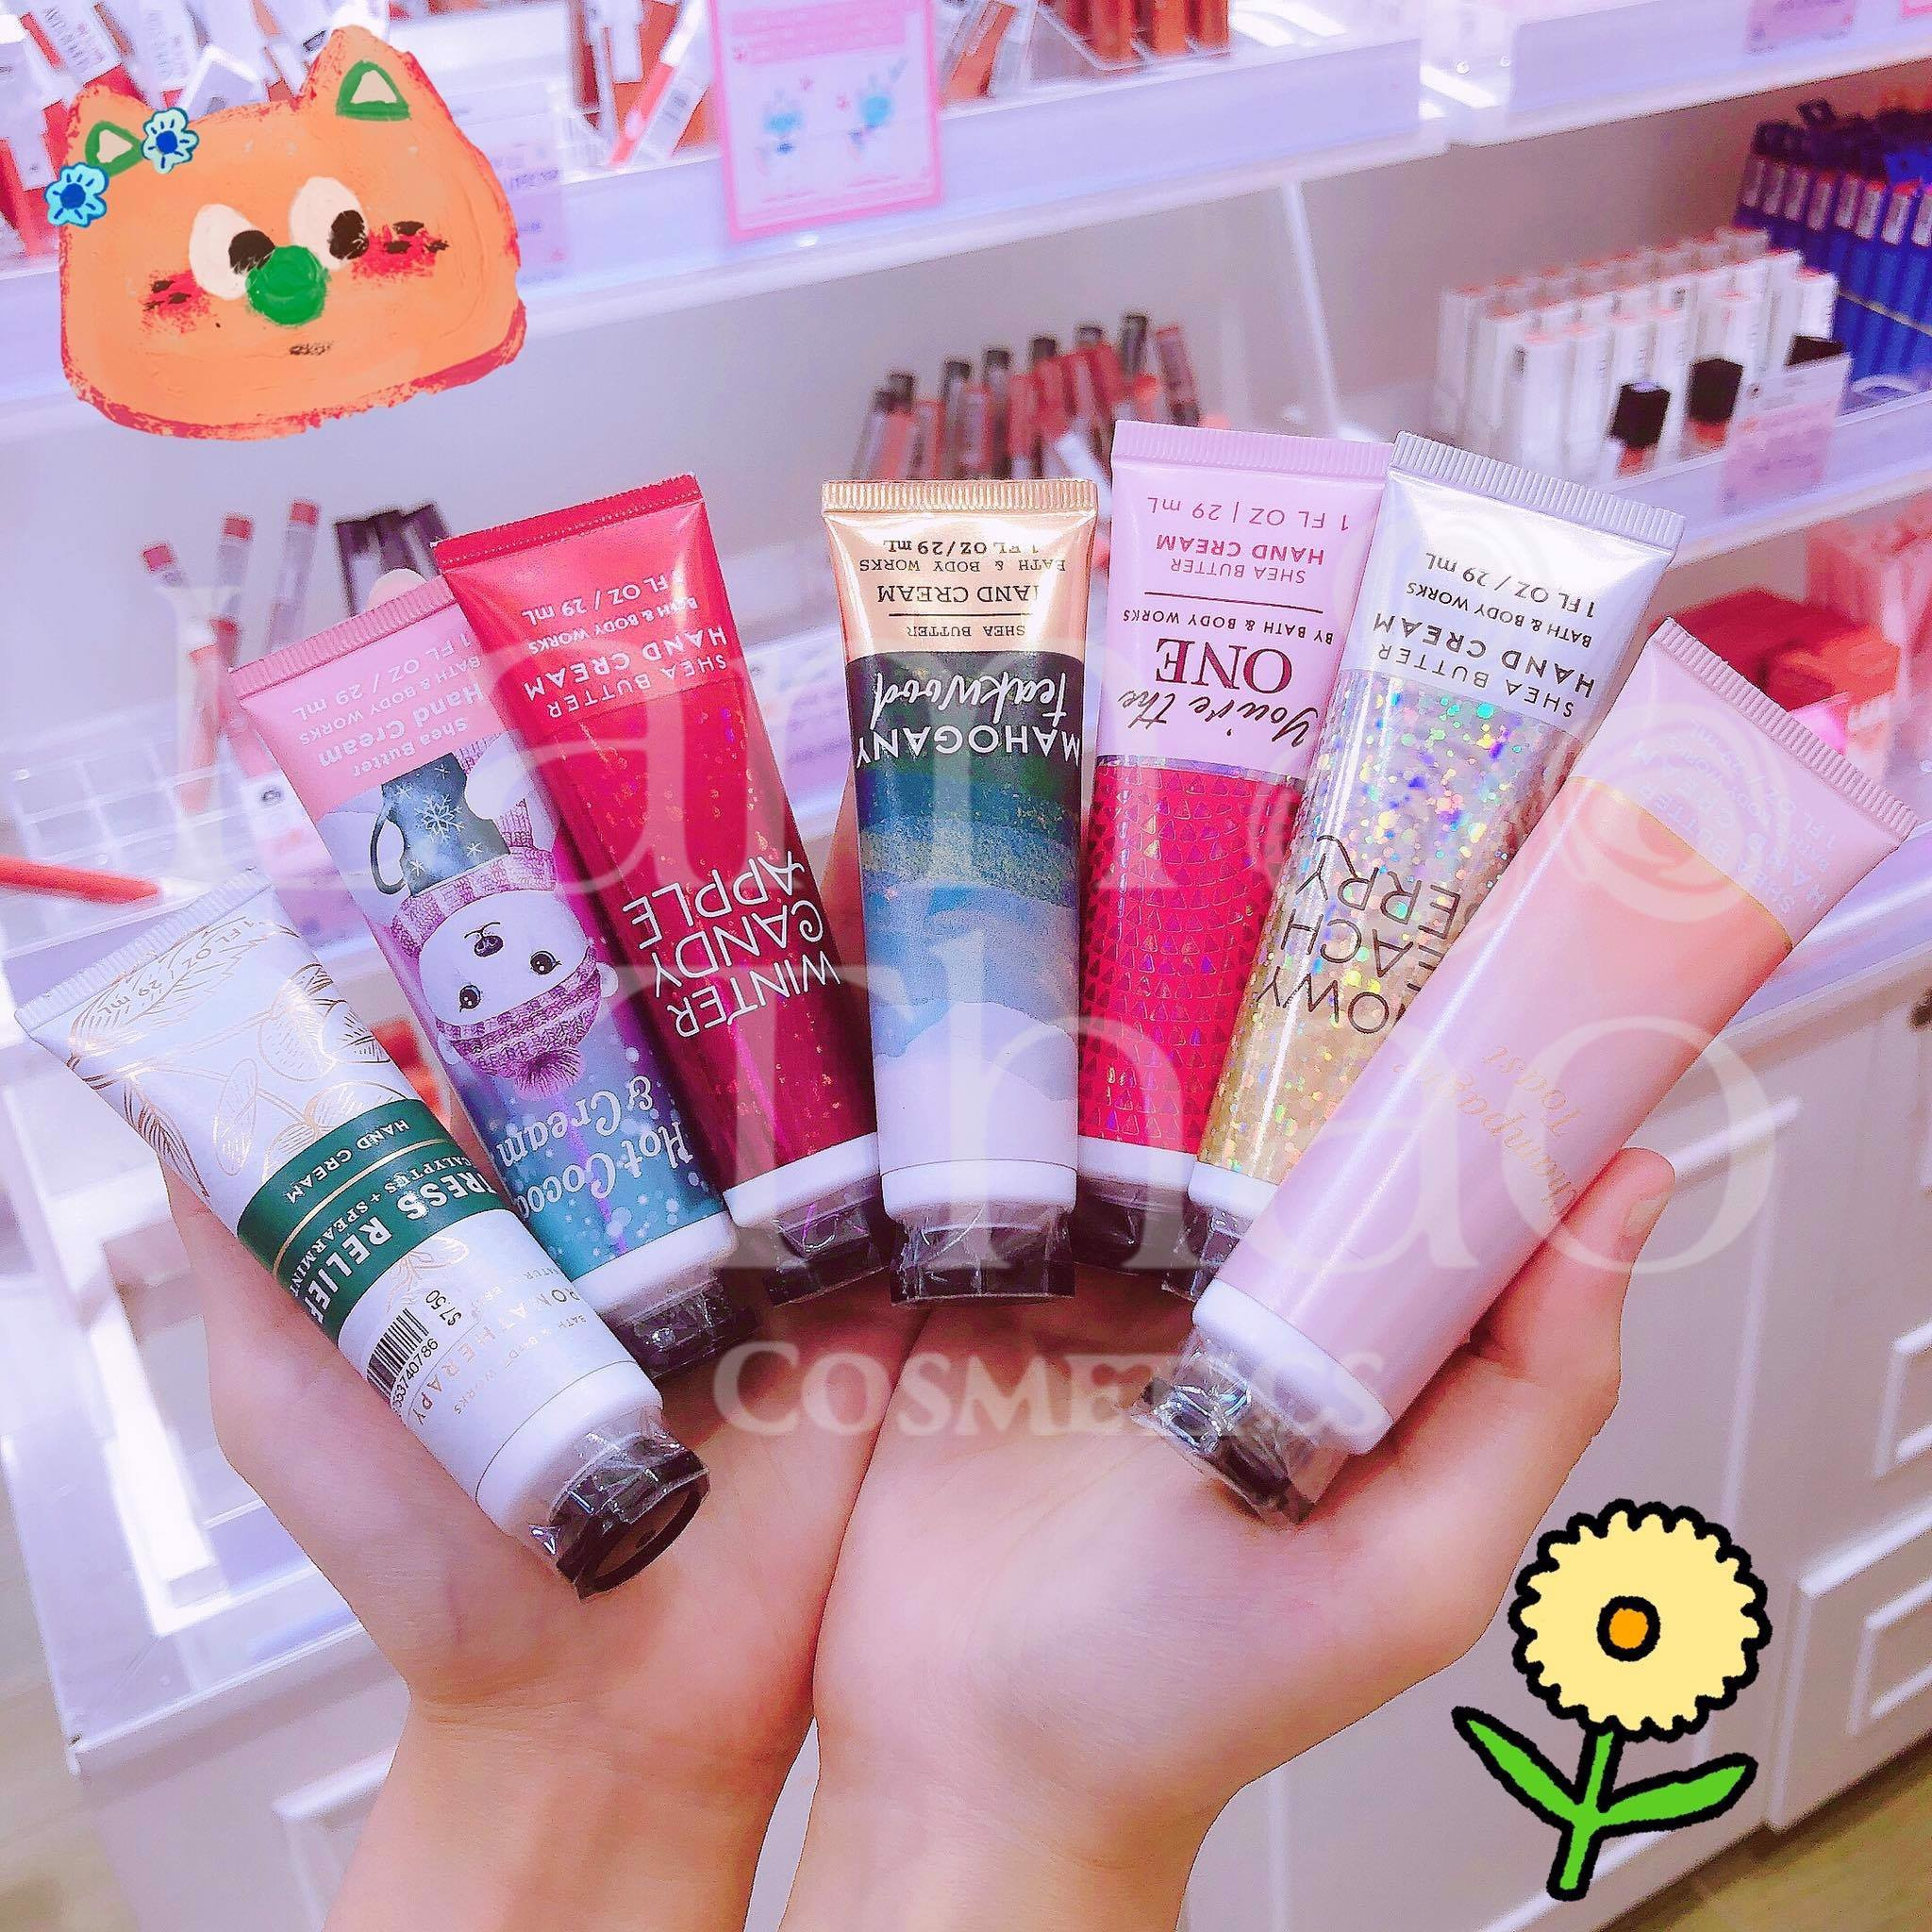 Kem Dưỡng Da Tay Bath & Body Works Snowy Peach Berry Hand Cream